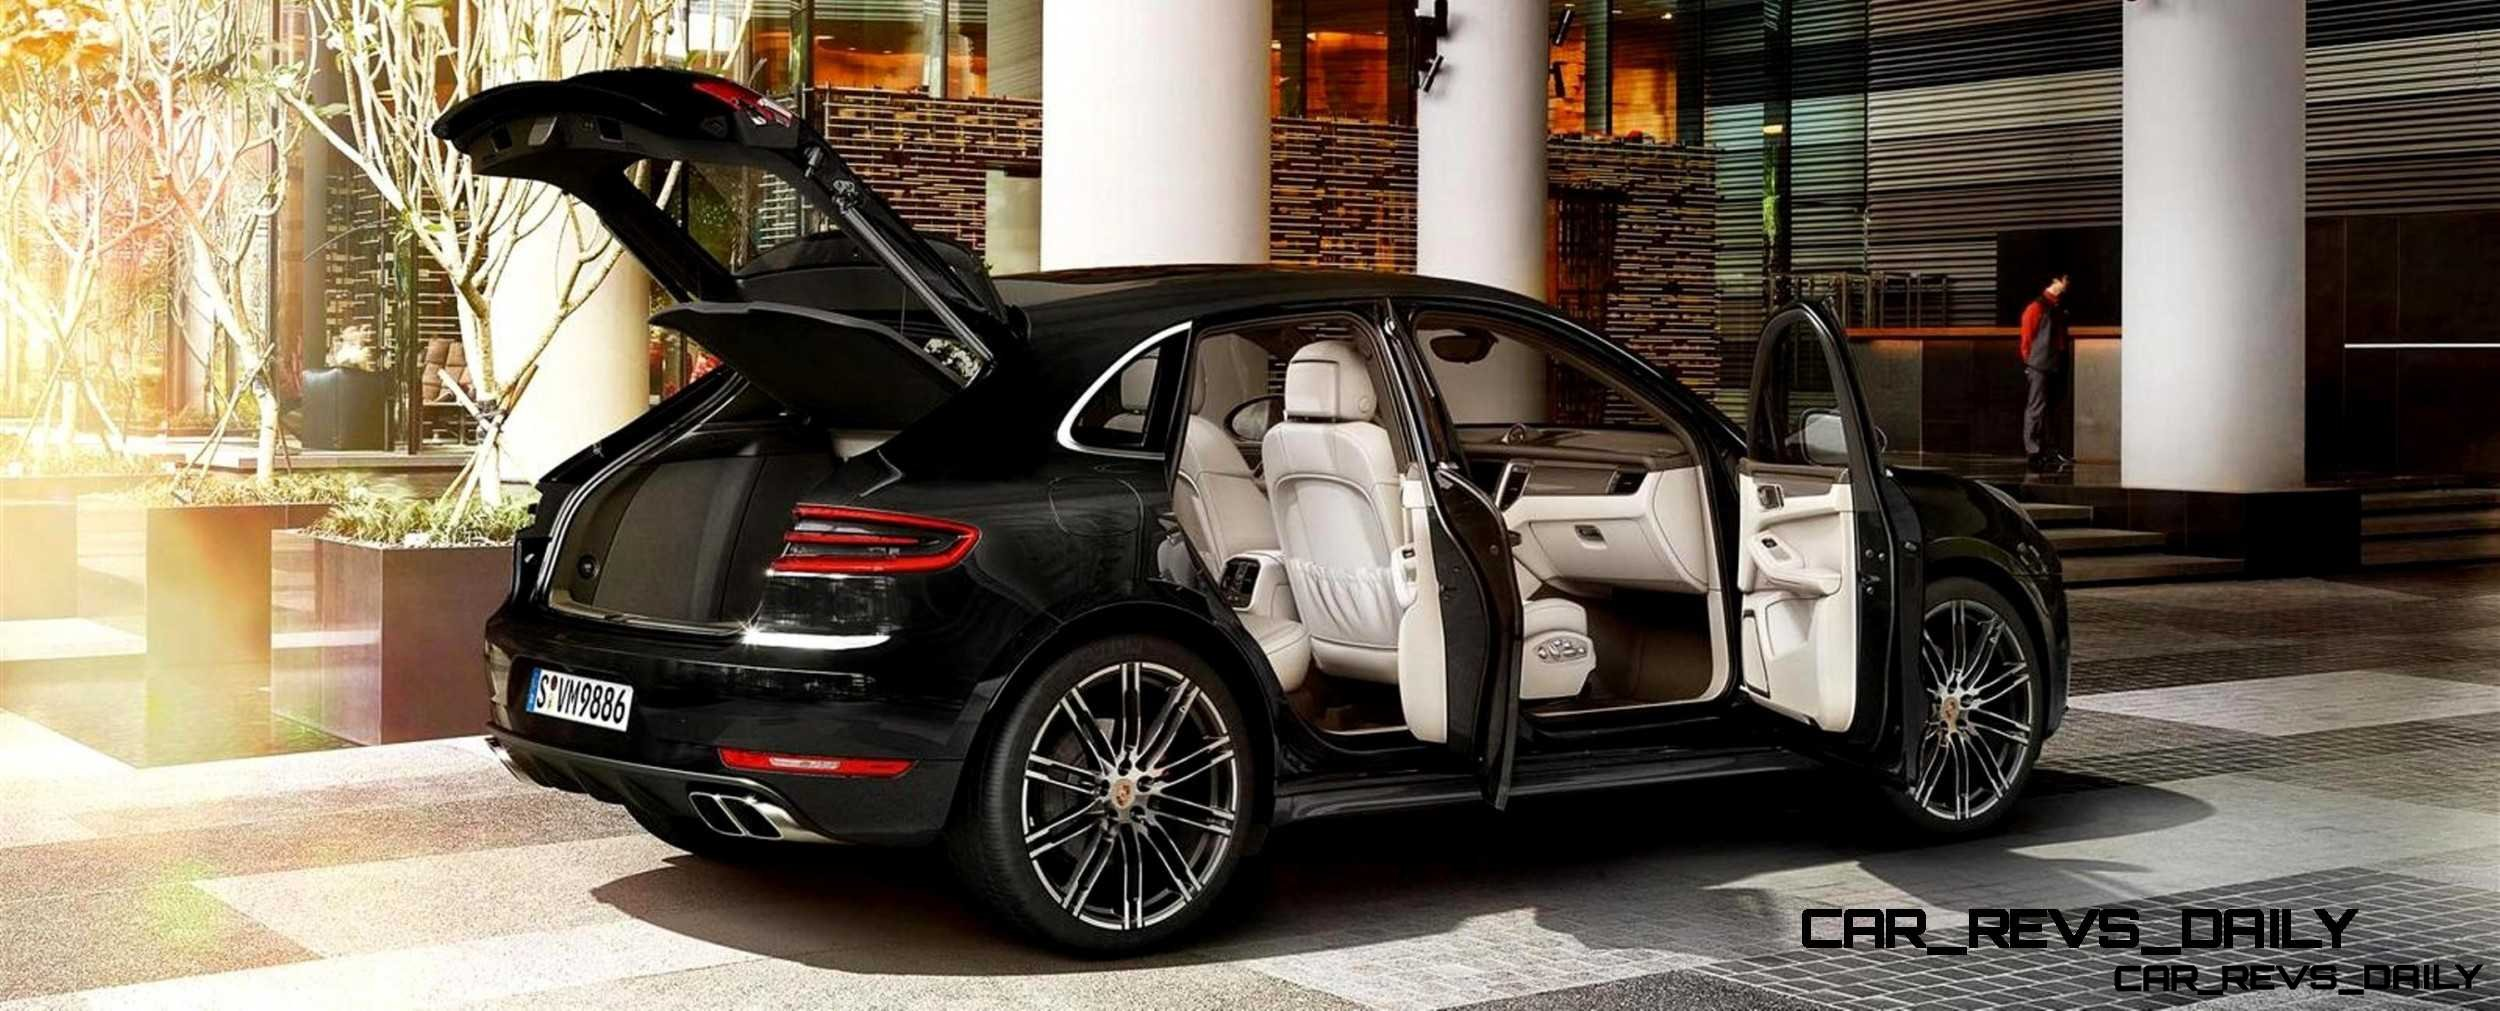 2015 Porsche Macan - Latest Images - CarRevsDaily.com 60